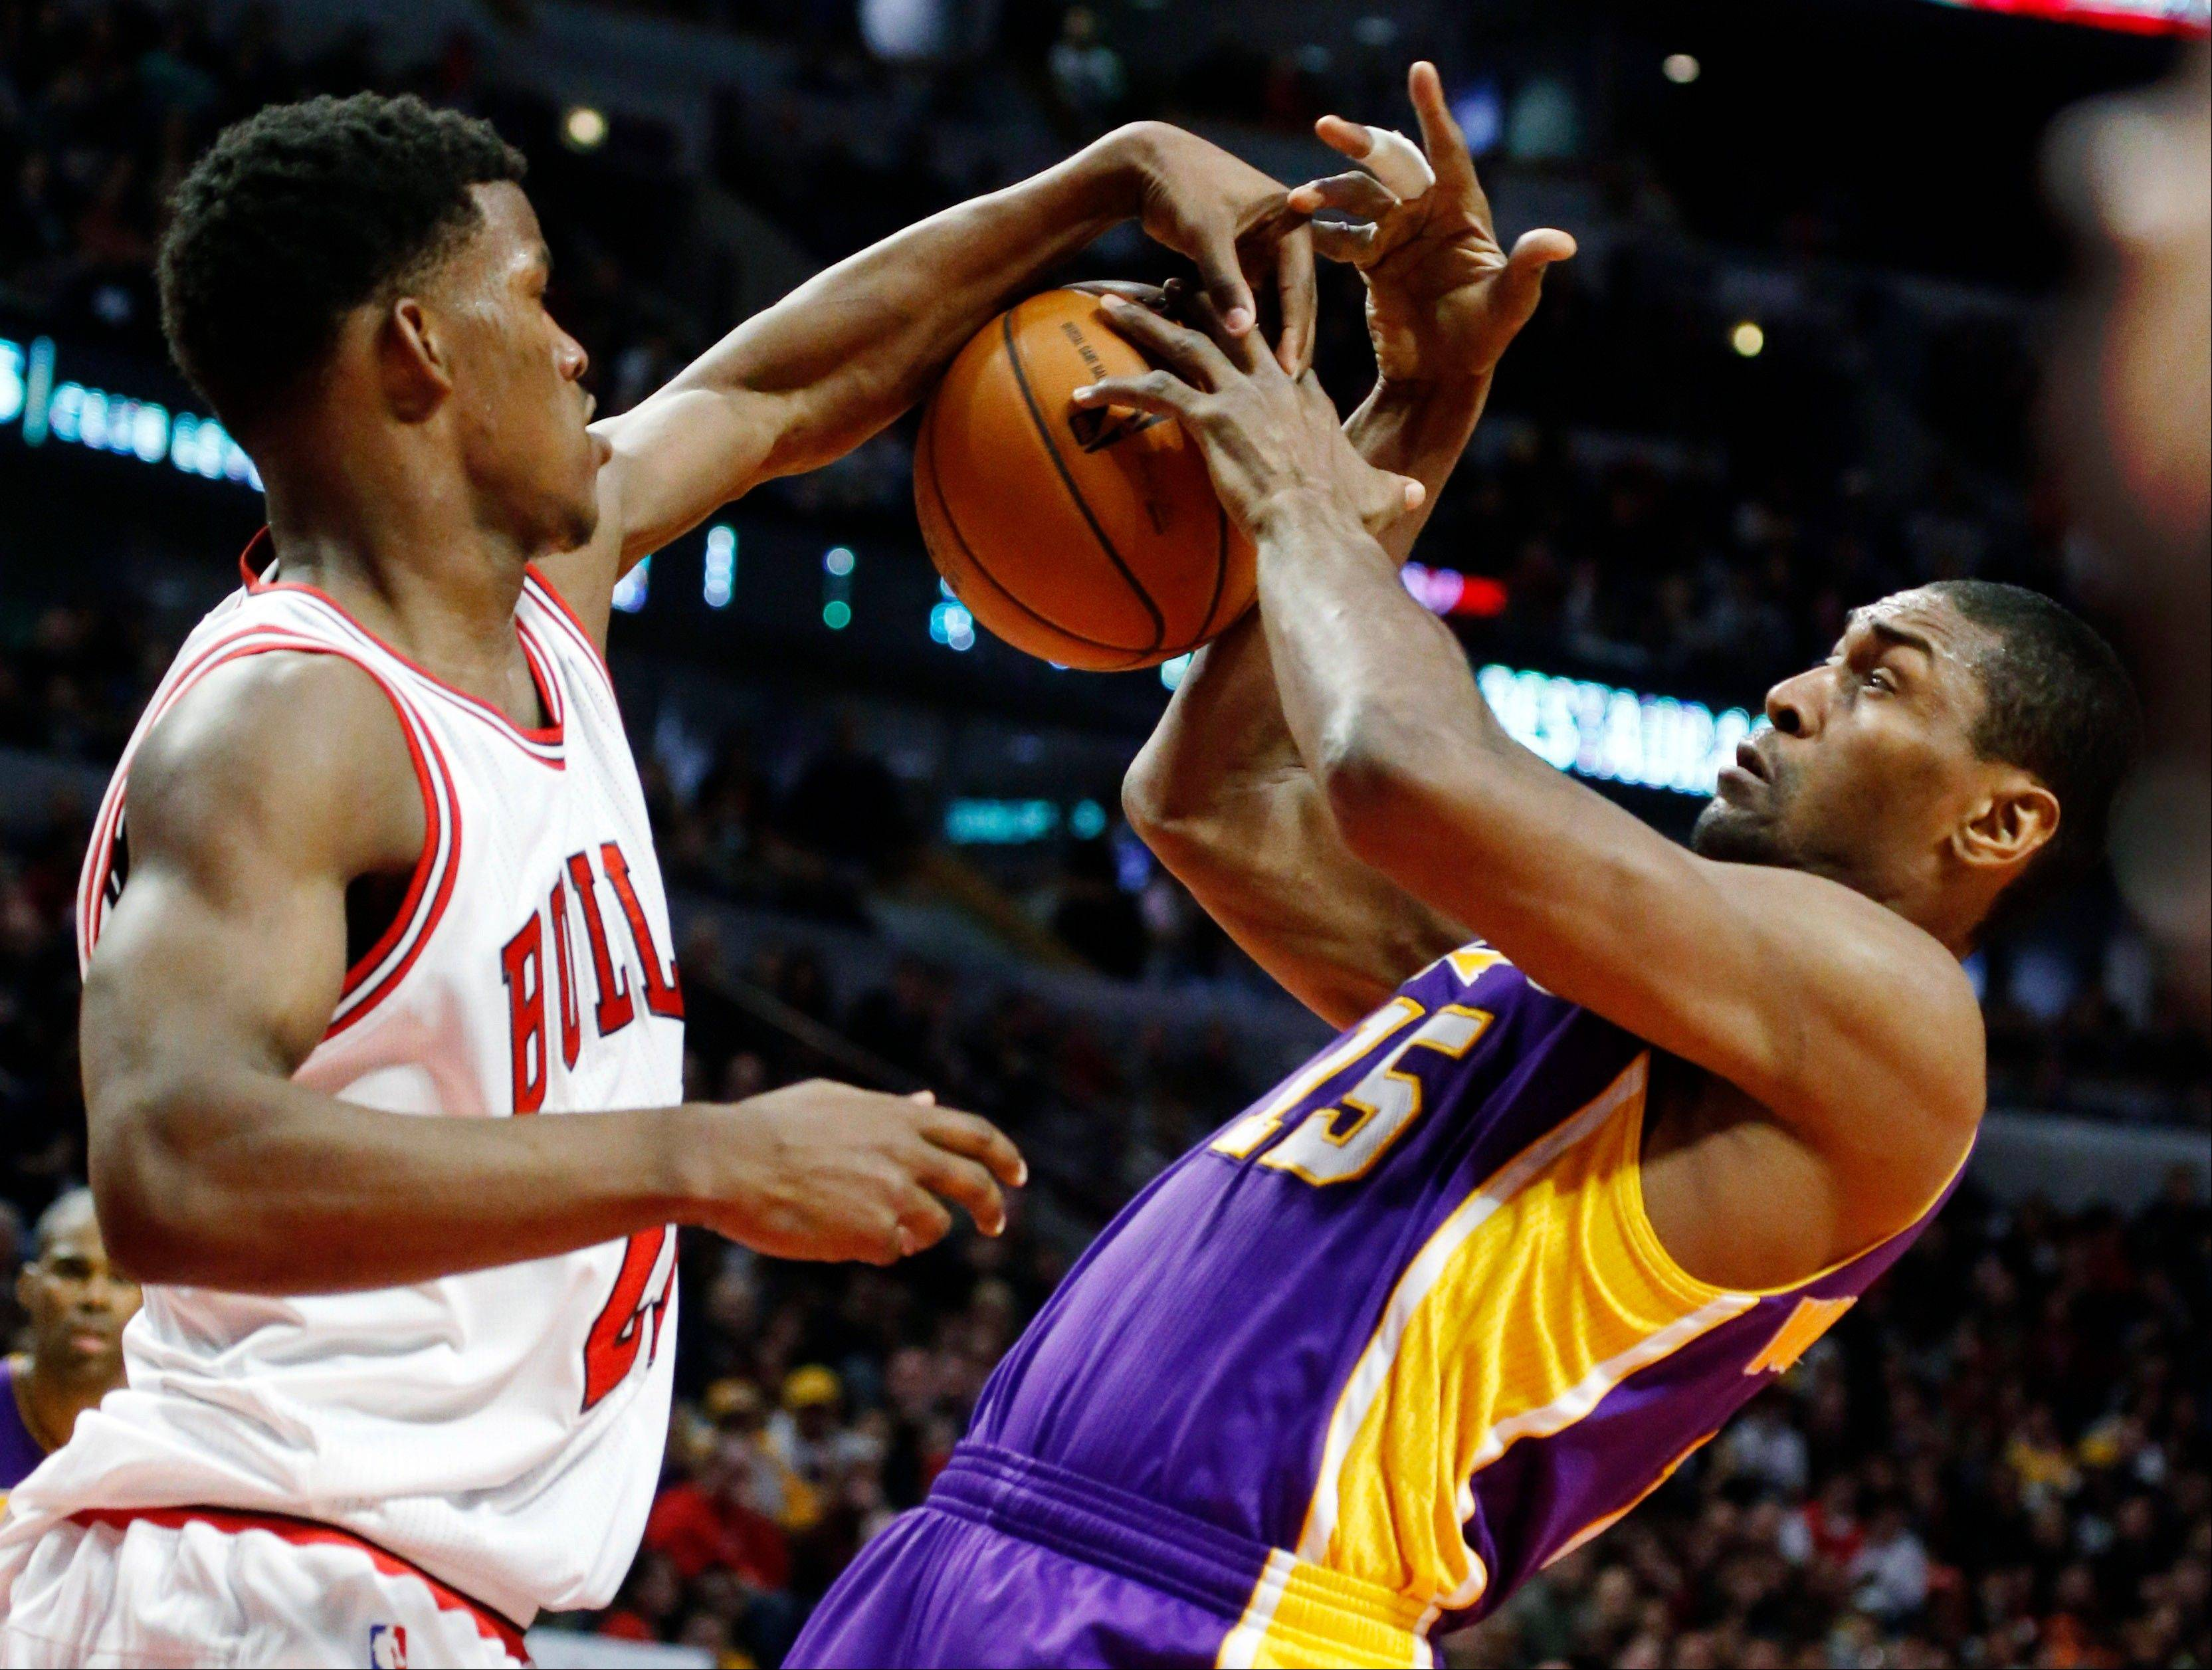 Bulls forward Jimmy Butler (21) knocks the ball from the hands of Los Angeles Lakers forward Metta World Peace during the first half of an NBA basketball game, Monday, Jan. 21, 2013, in Chicago.